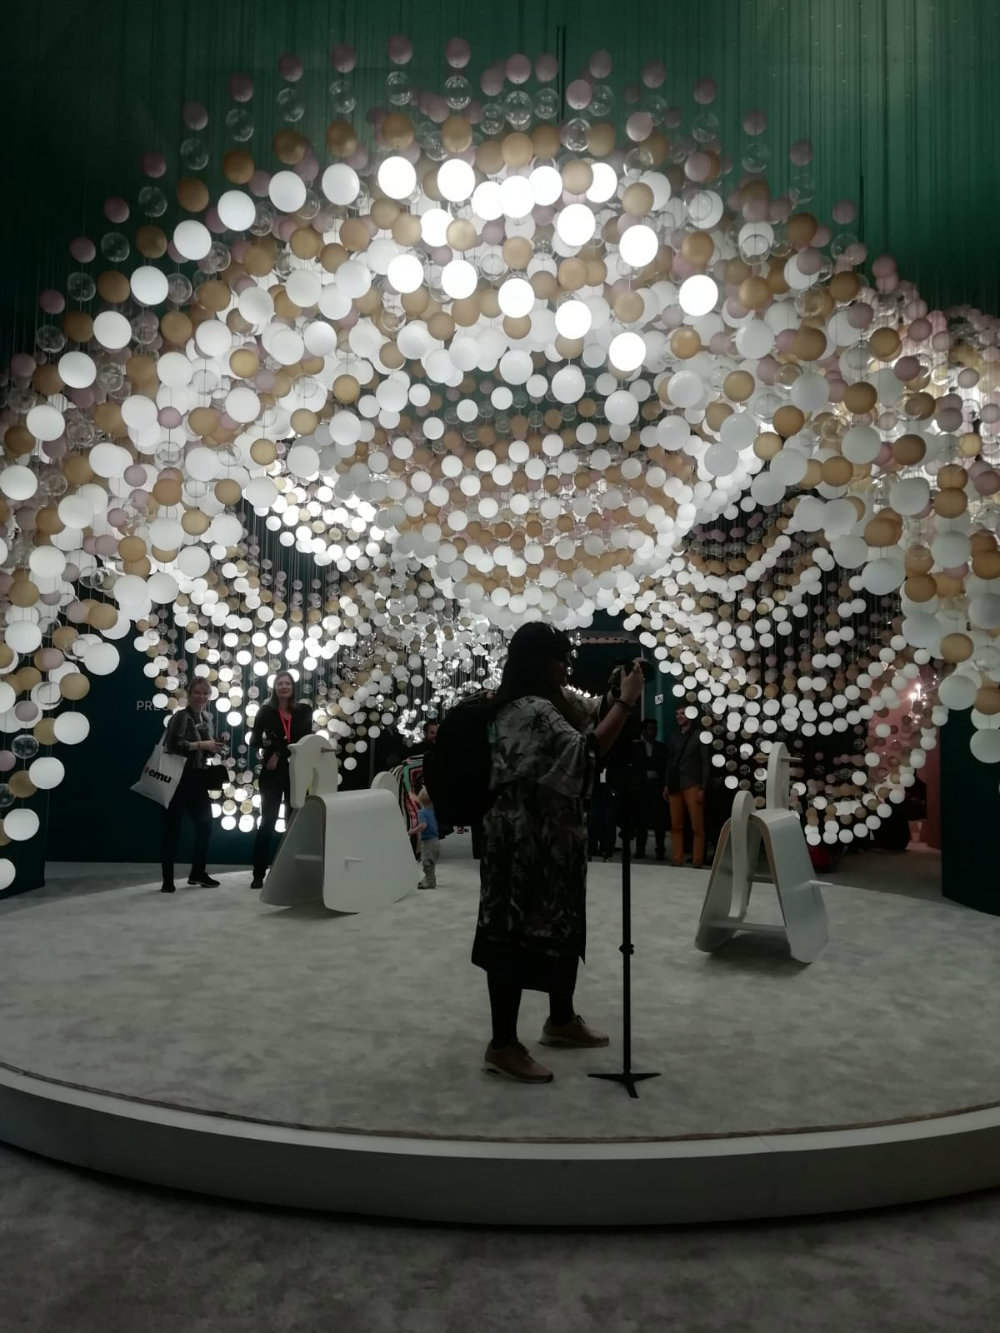 salone del mobile 2019 Salone Del Mobile 2019: What You Missed Salone Del Mobile 2019 What You Missed 17